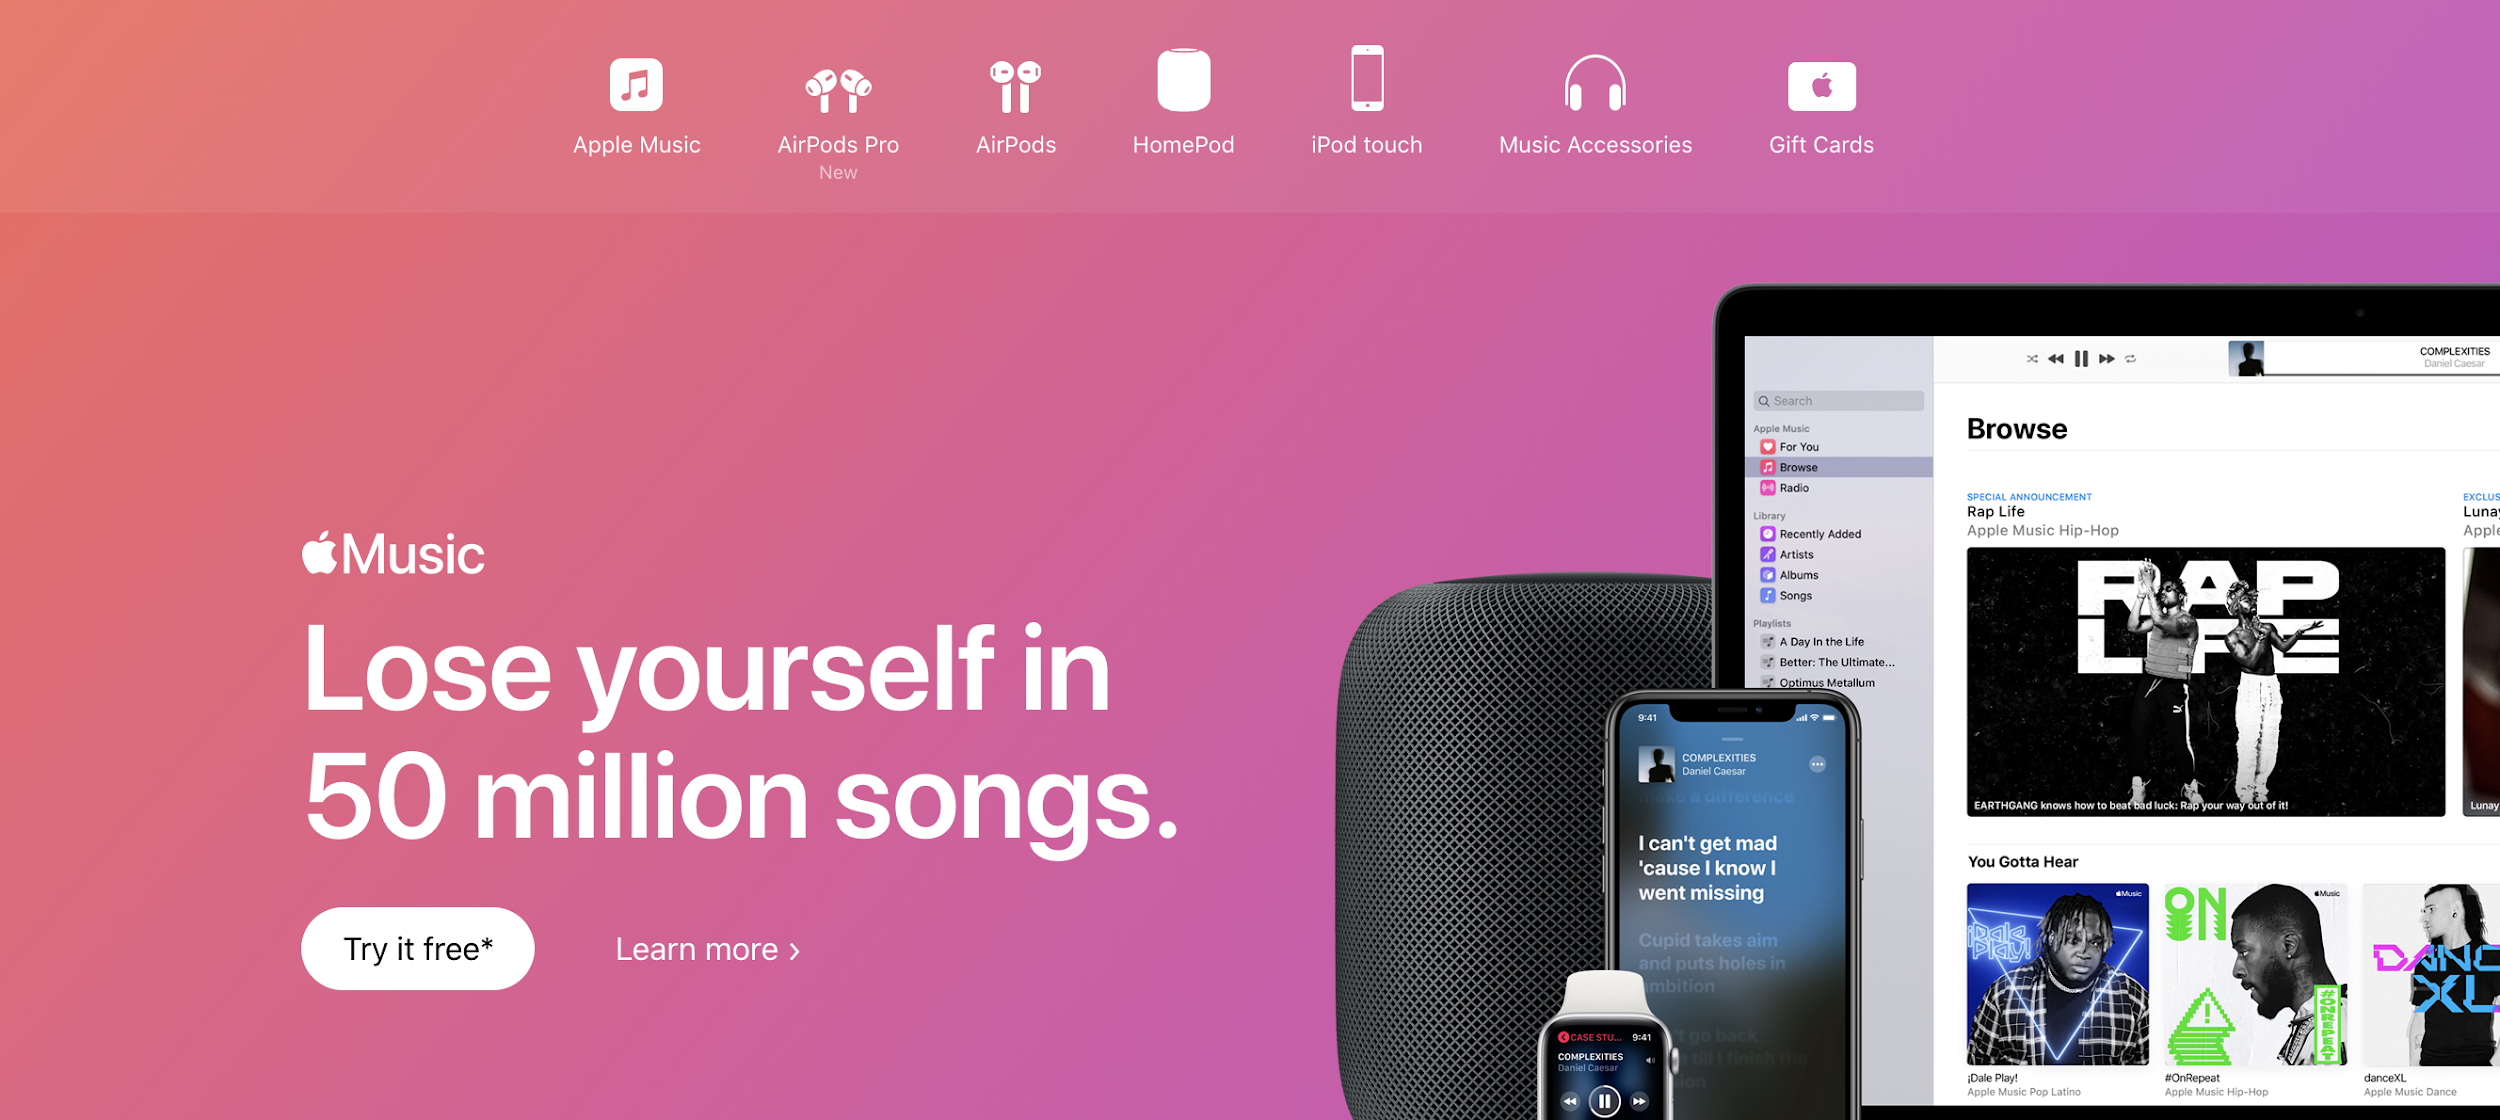 Apple Music como exemplo de plataforma digitais para música